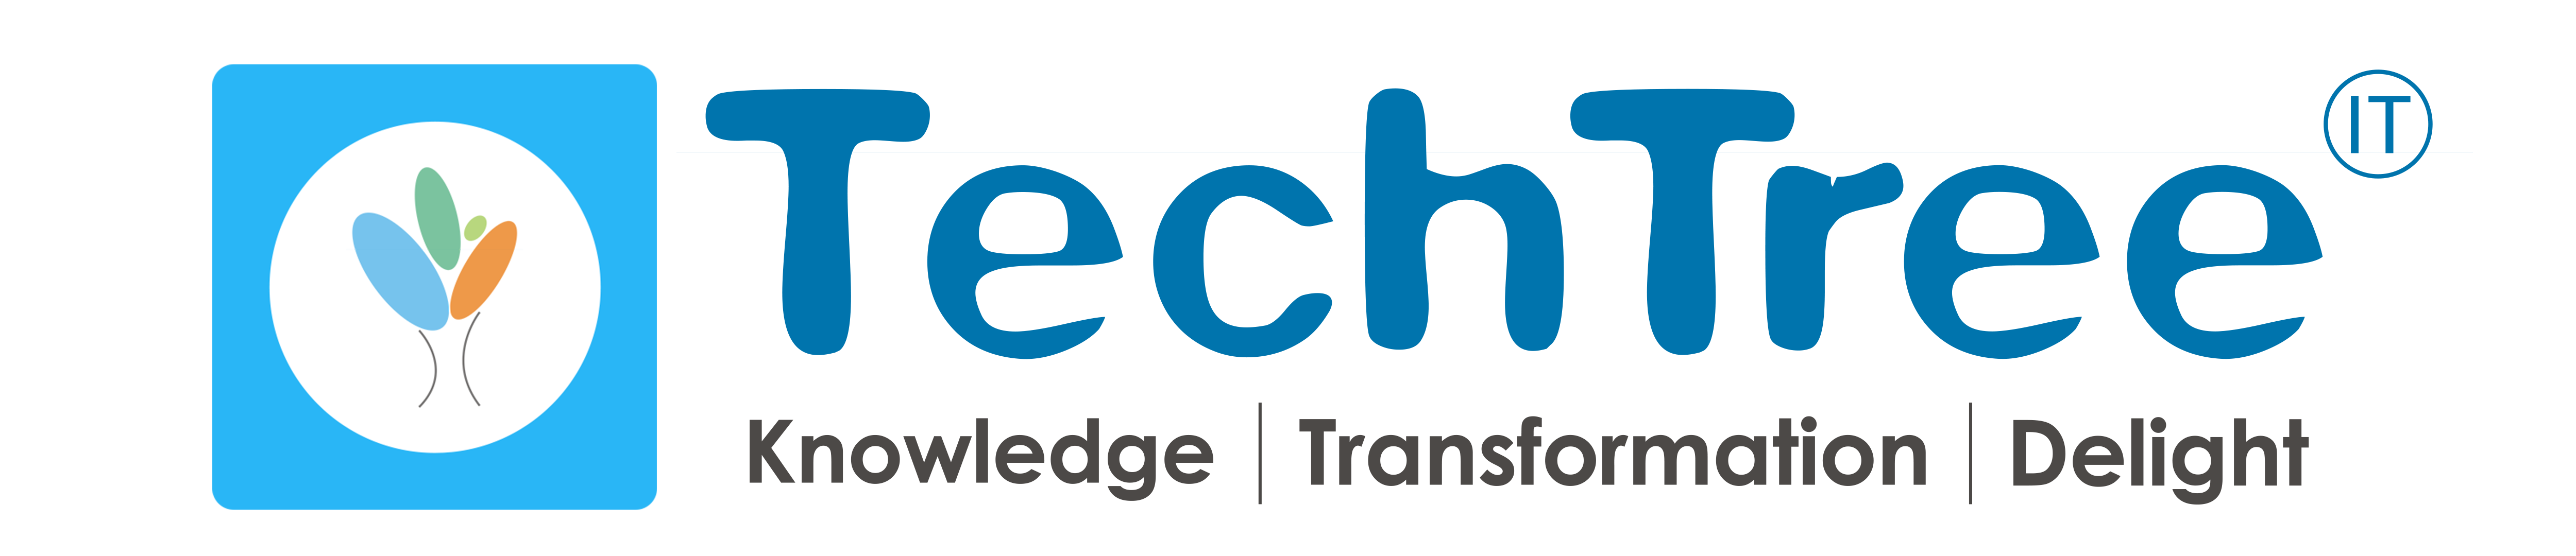 TechTree IT Systems Pvt Ltd Job Openings